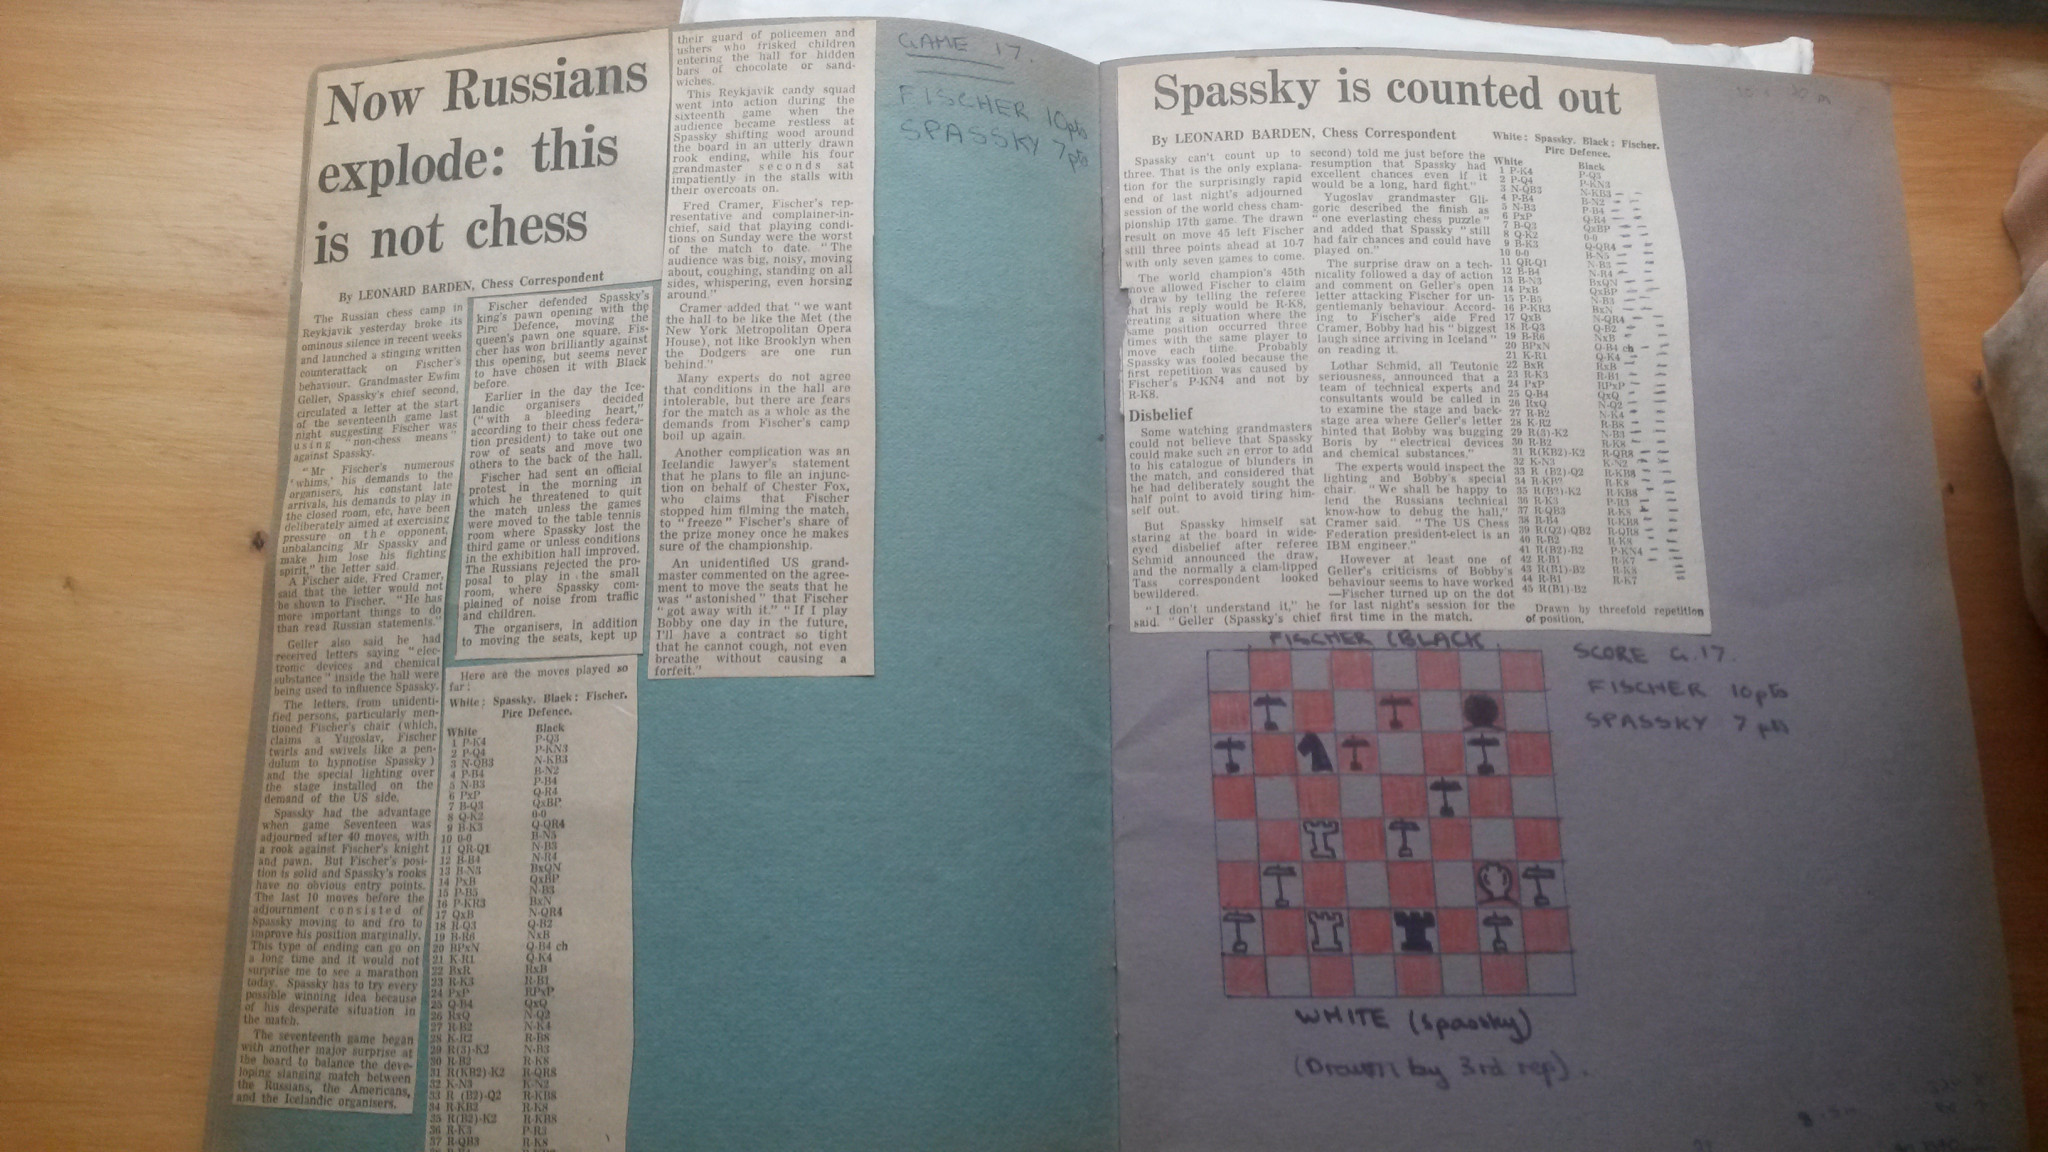 The mood shifted again as Boris Spassky's camp complained about Bobby Fischer employing